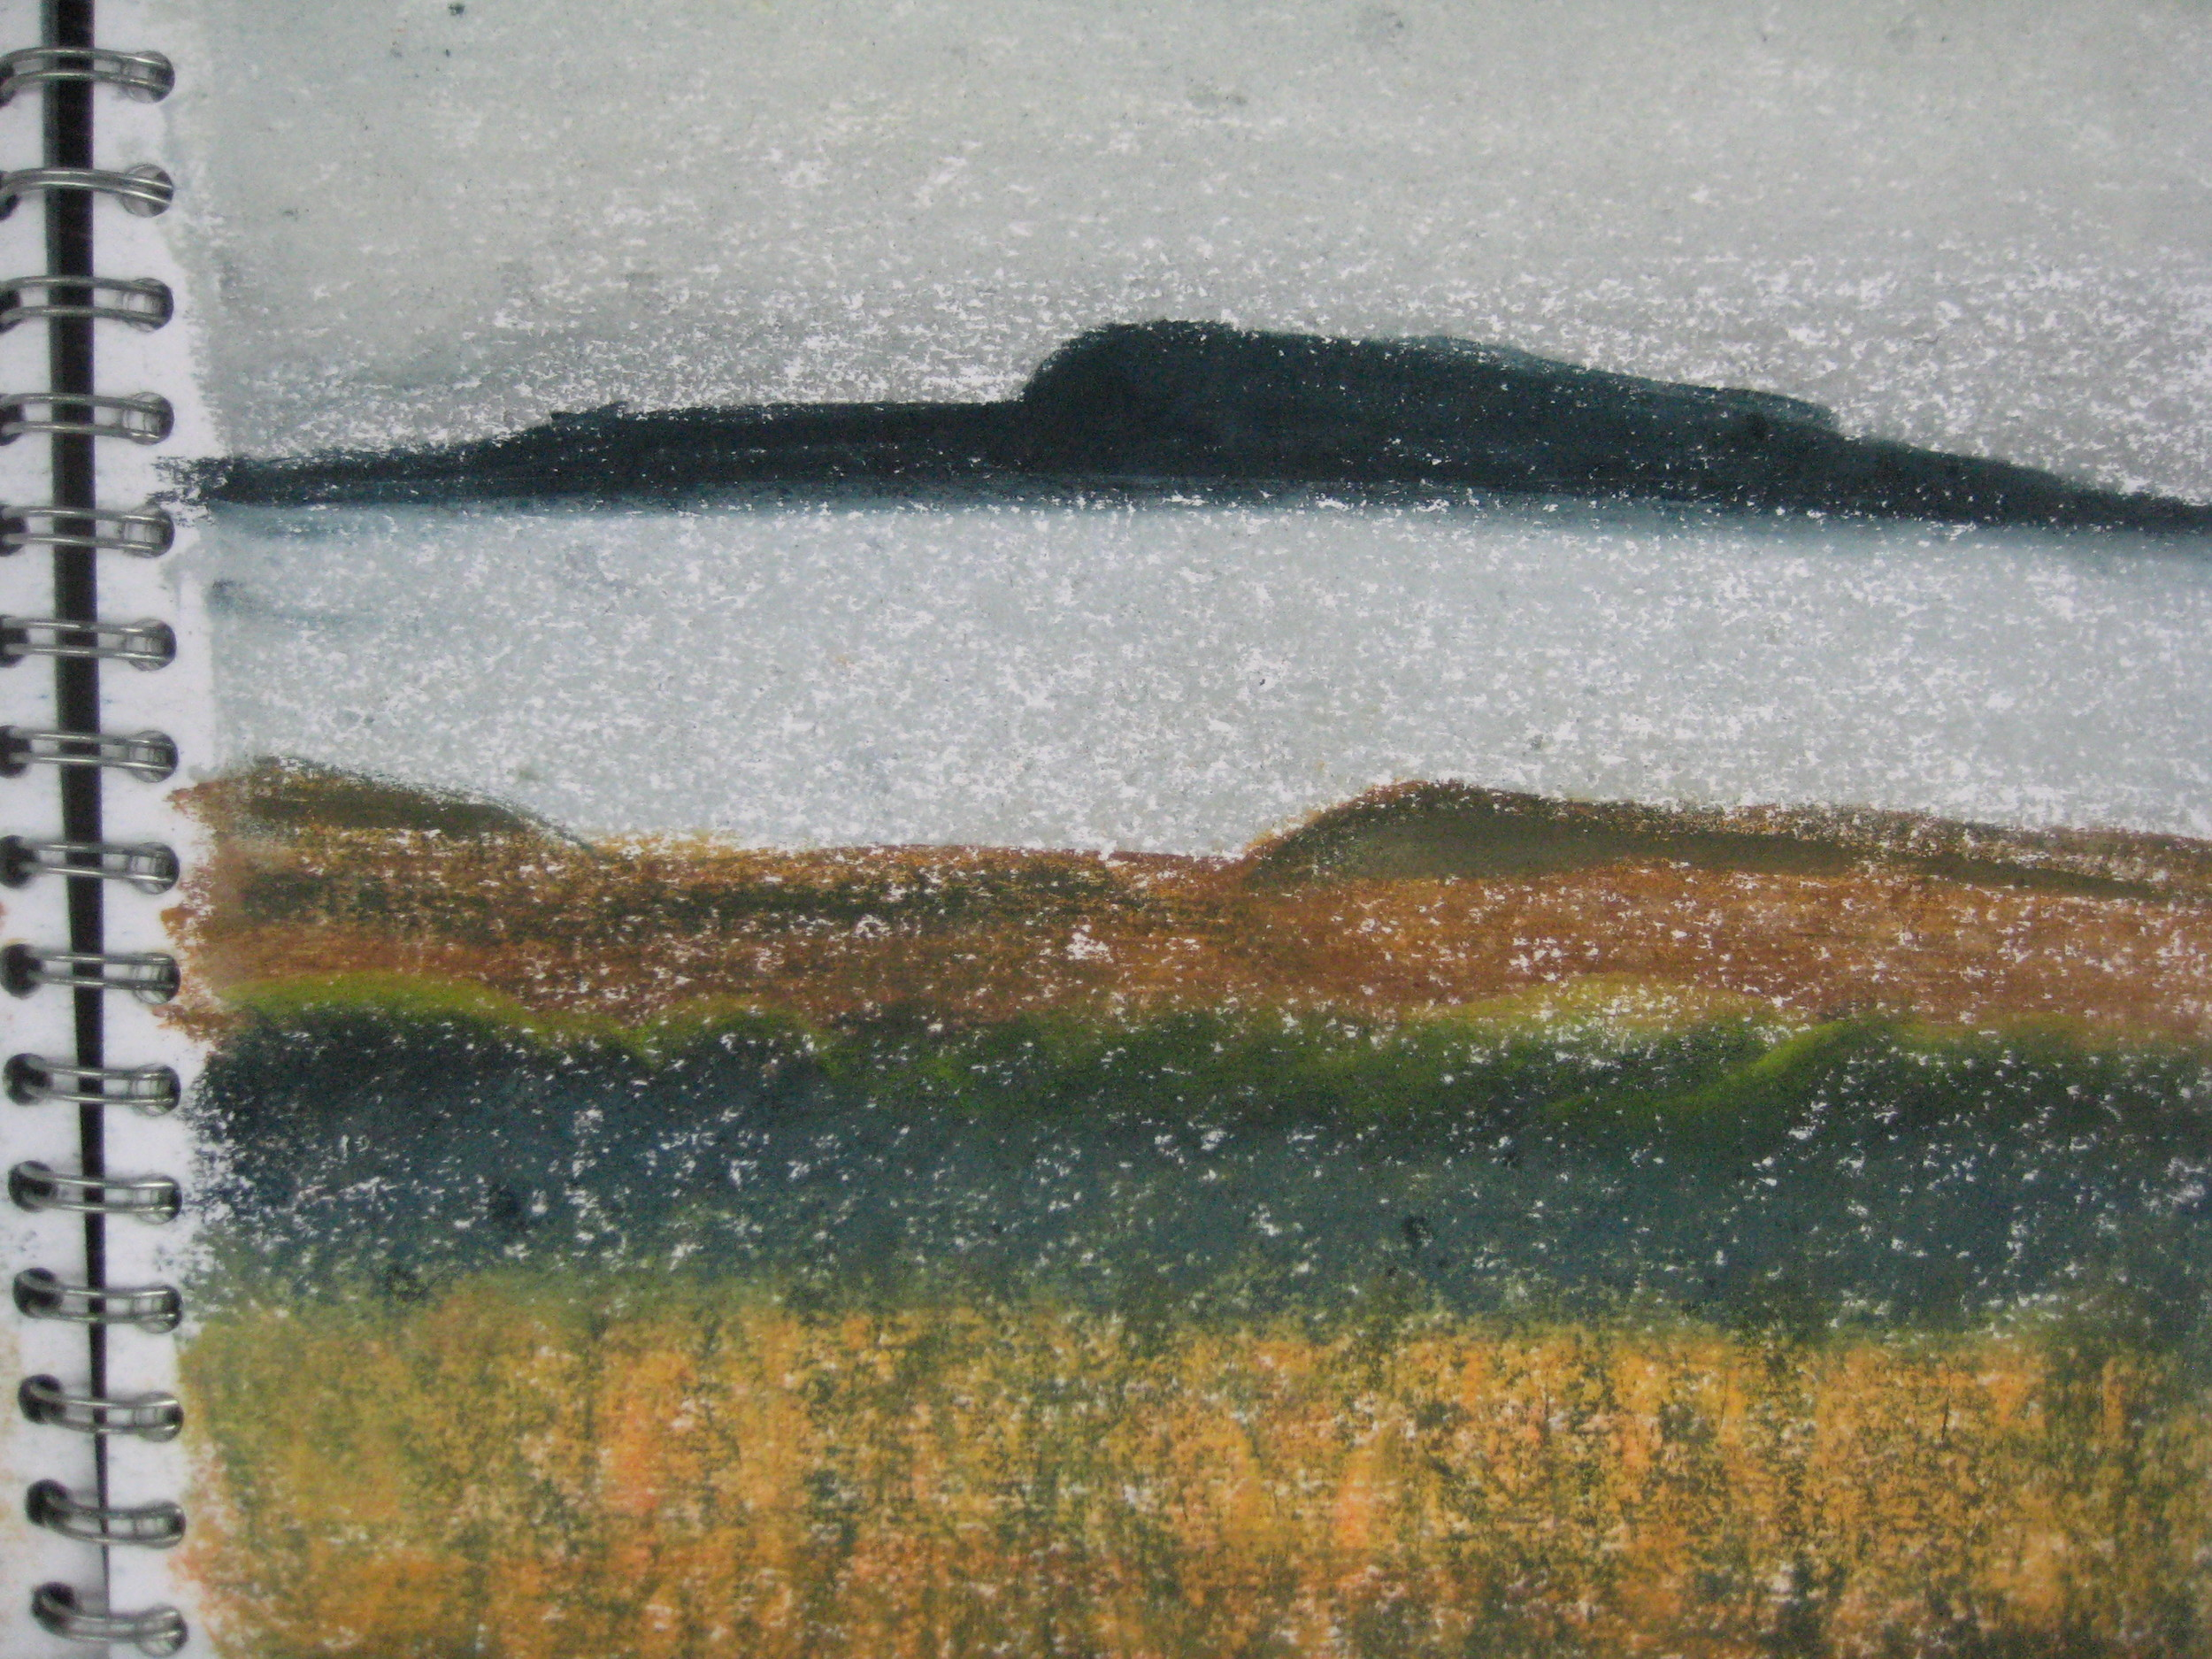 "NEAR BORGARNES, ICELAND  Approx 9X9"" (23X23cm)   Pastel on card"